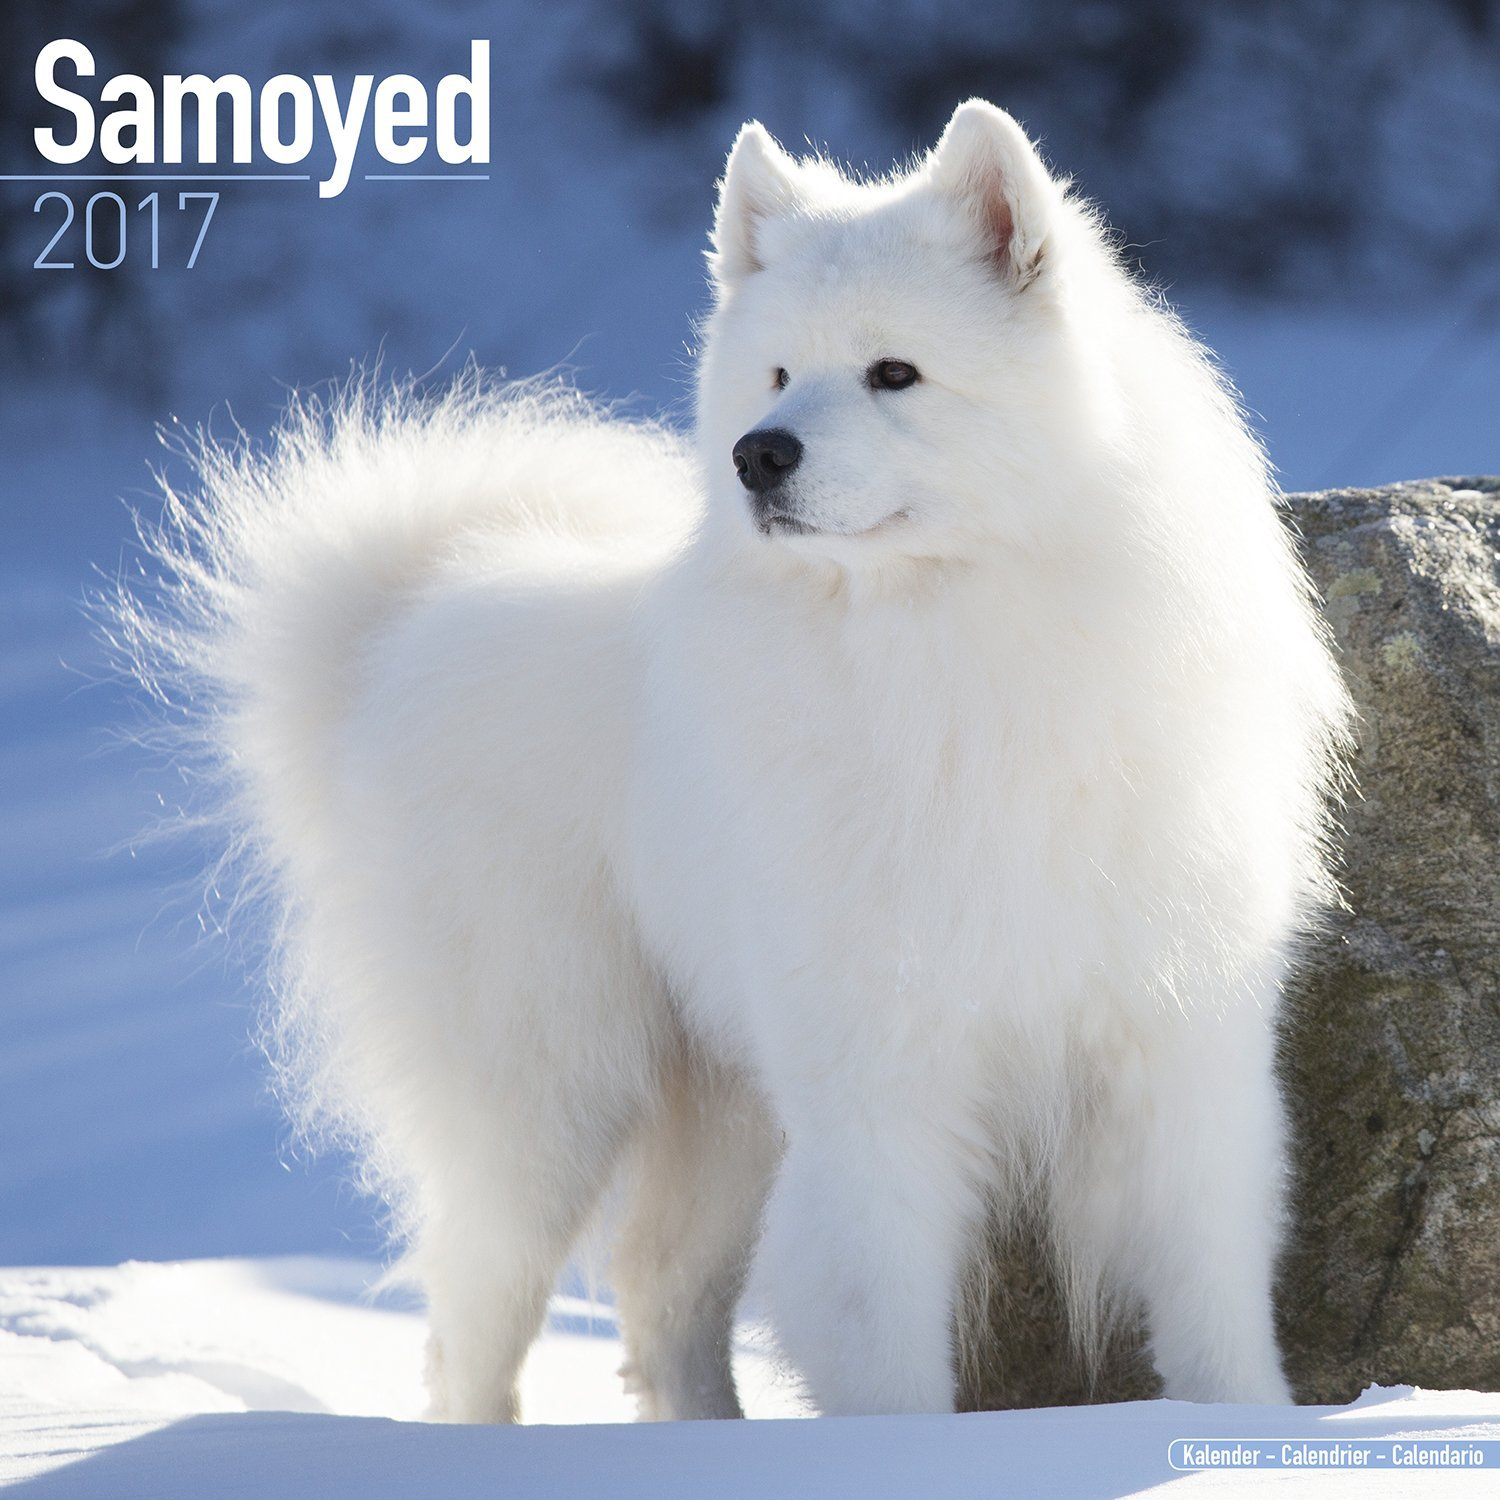 Samoyed Calendar 2017 - Dog Breed Calendars - 2016 - 2017 wall ...